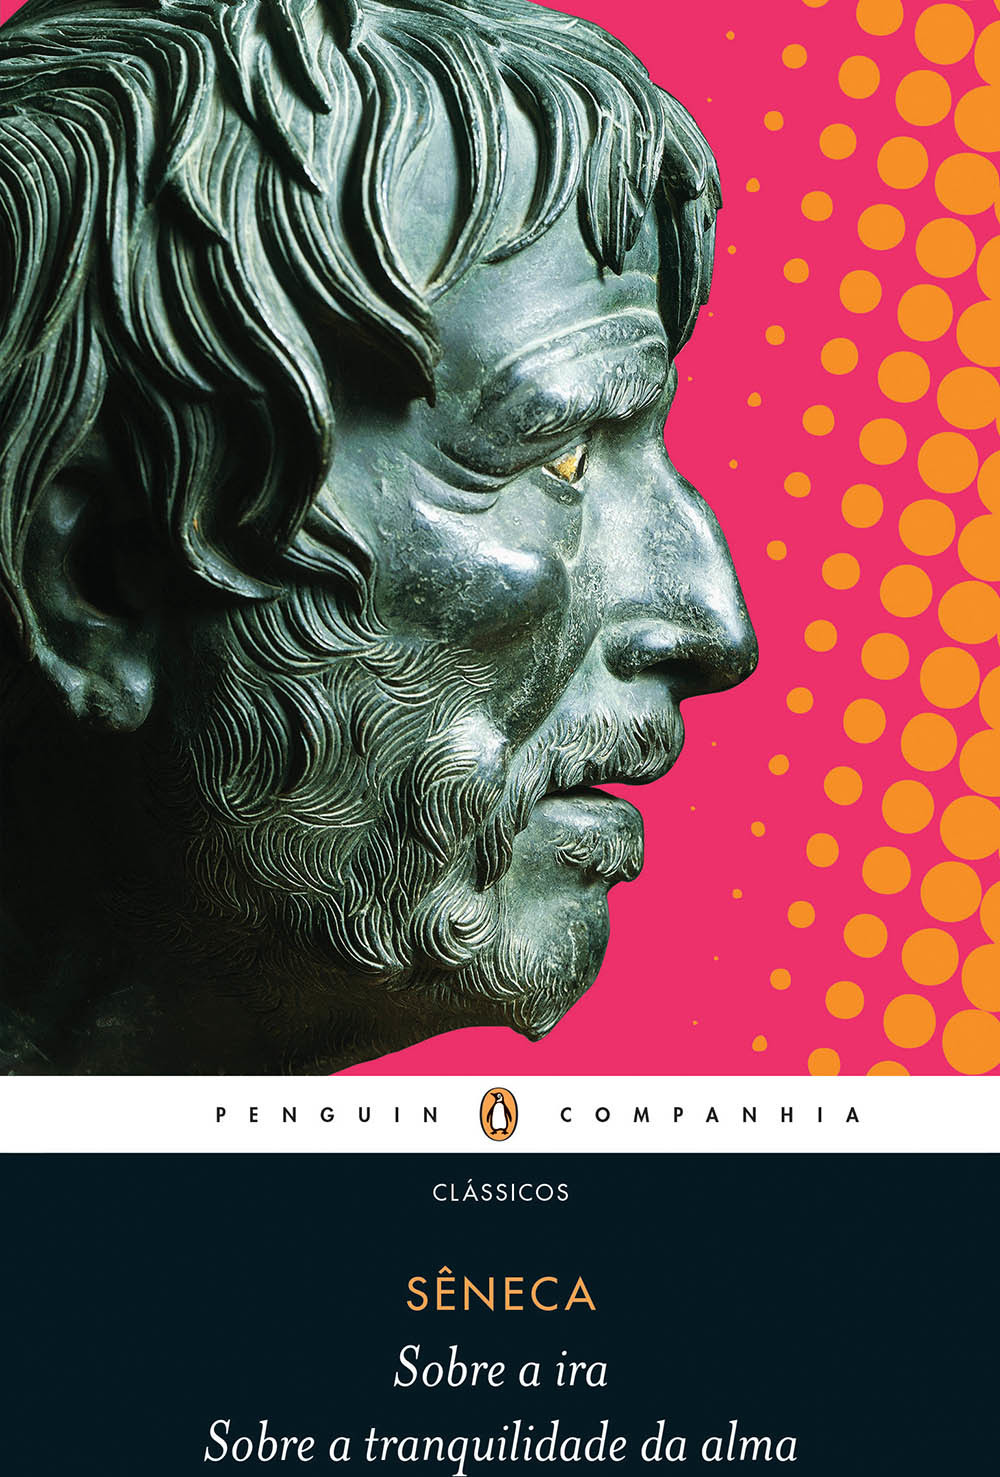 seneca moral and political essays - j m cooper, j f procopé: seneca: moral and political essays (cambridge texts in the history of political thought) (cambridge texts in the history of political thought) pp xl+324.